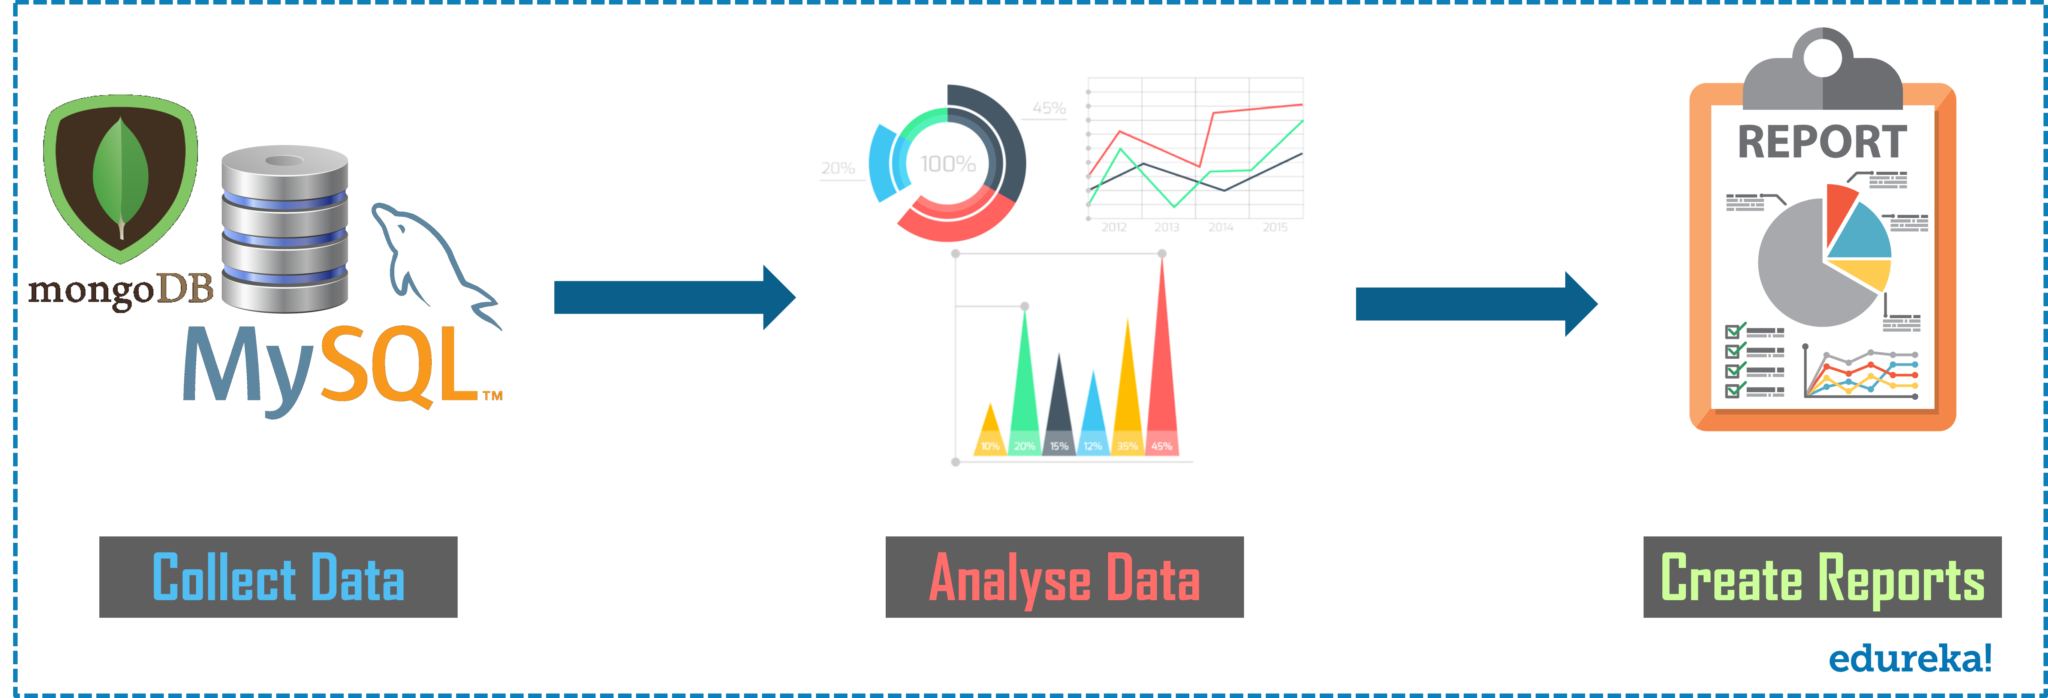 How To Become A Data Analyst - What is Data Analytics - Edureka